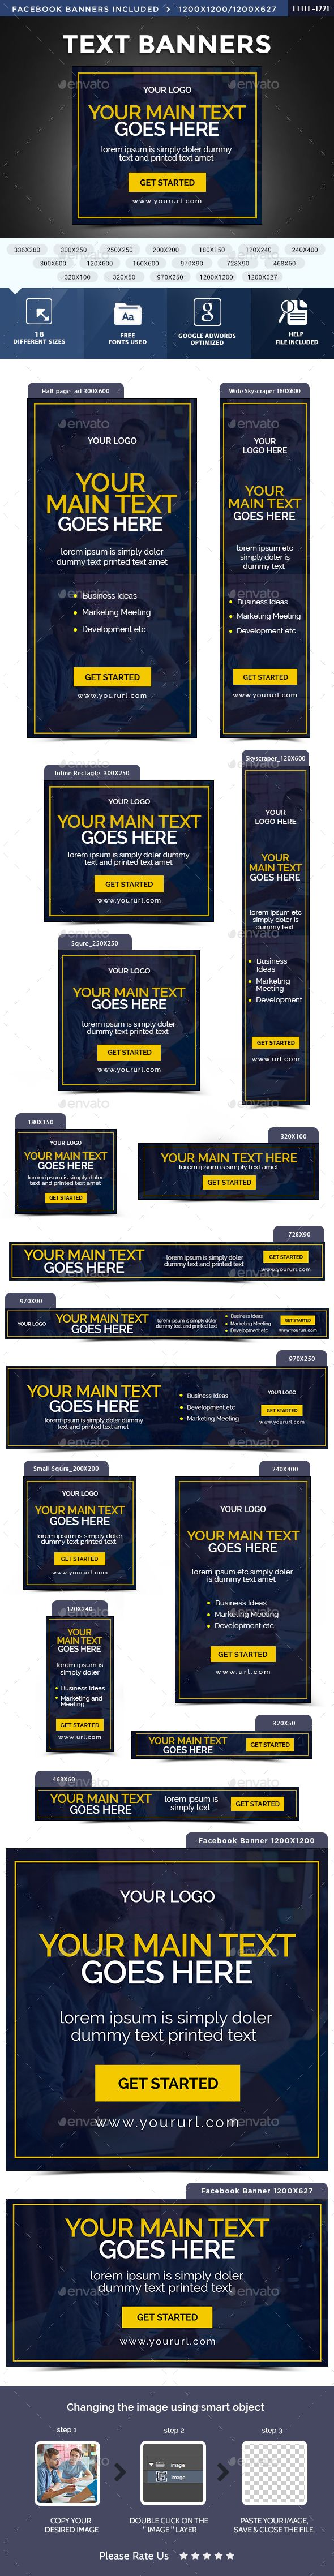 Text Web Banners Template PSD. Download here: http://graphicriver.net/item/text-banners/15021955?ref=ksioks